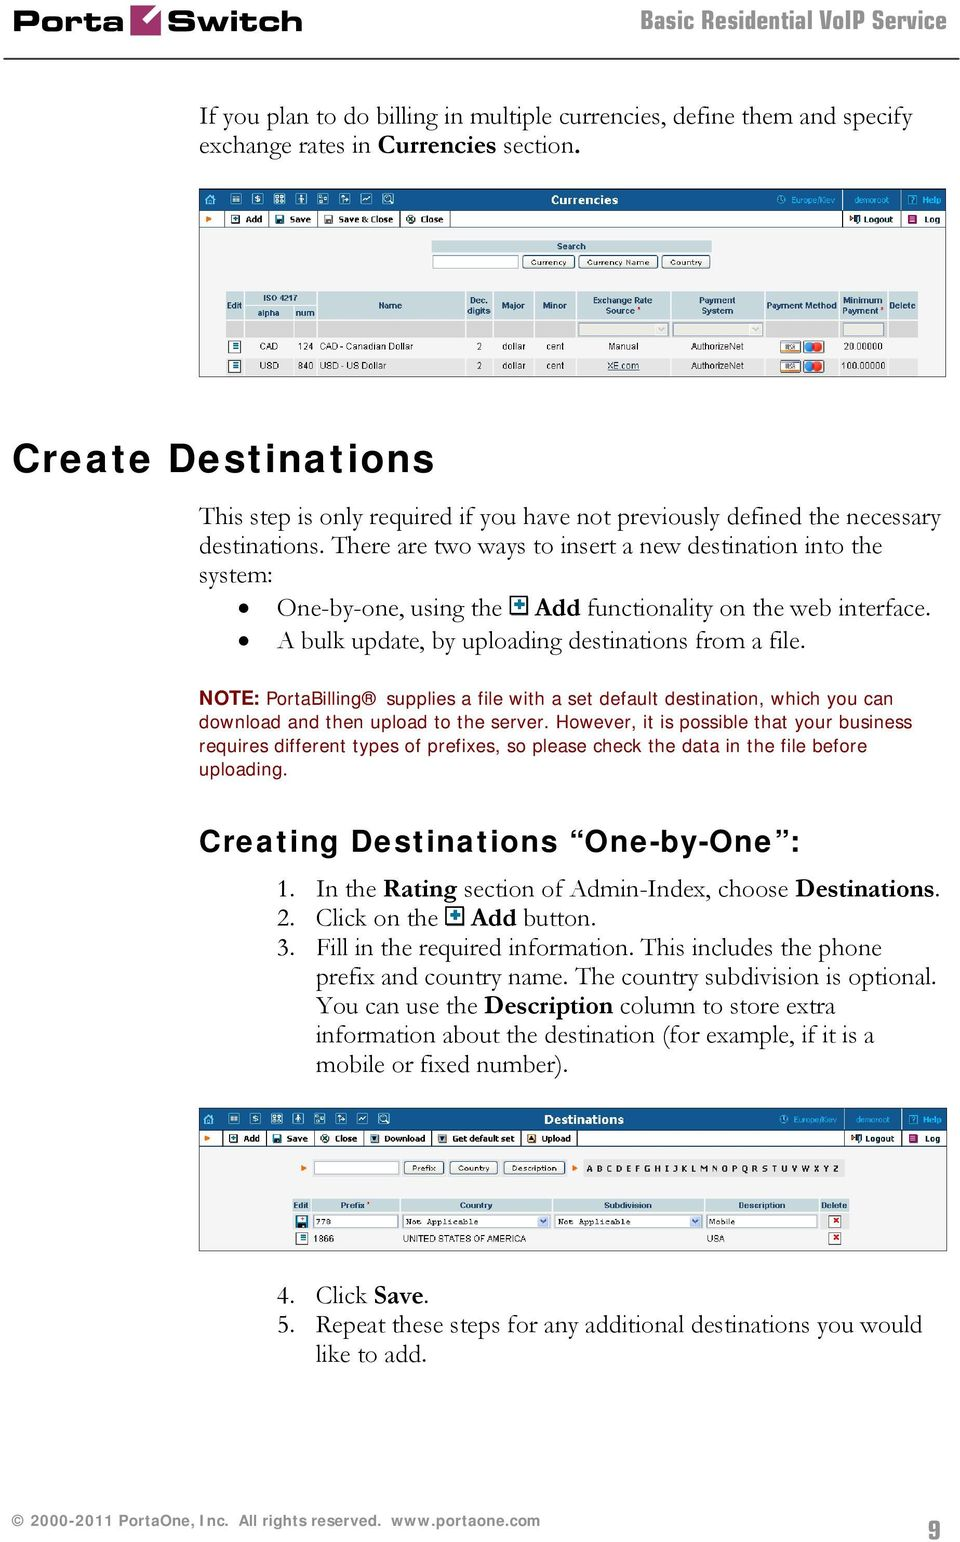 There are two ways to insert a new destination into the system: One-by-one, using the Add functionality on the web interface. A bulk update, by uploading destinations from a file.